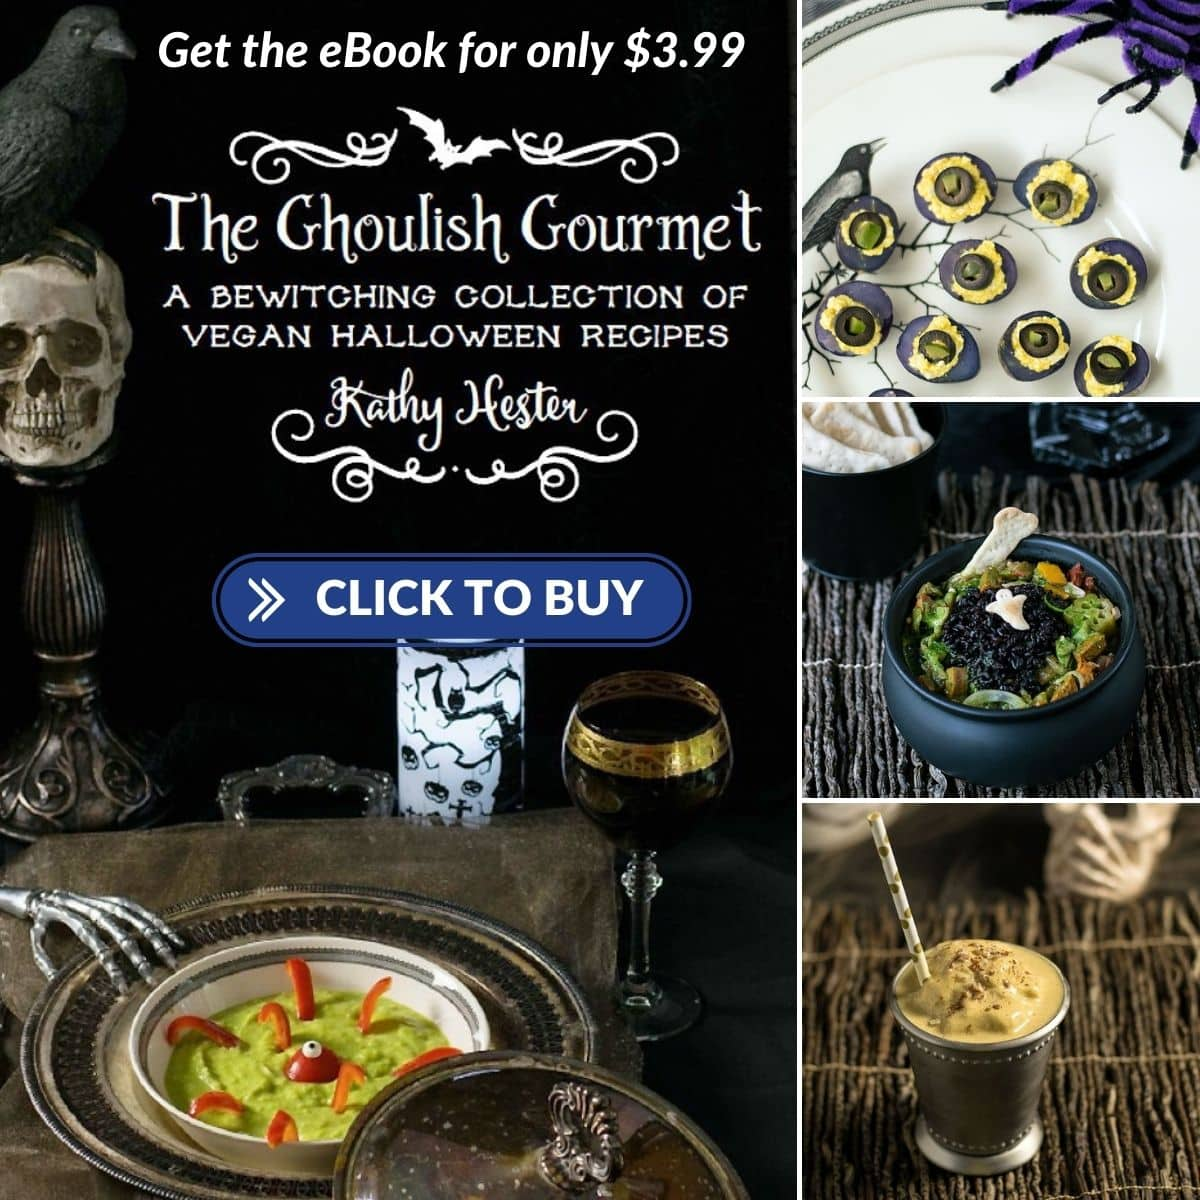 Images from The Ghoulish Gourmet eBook